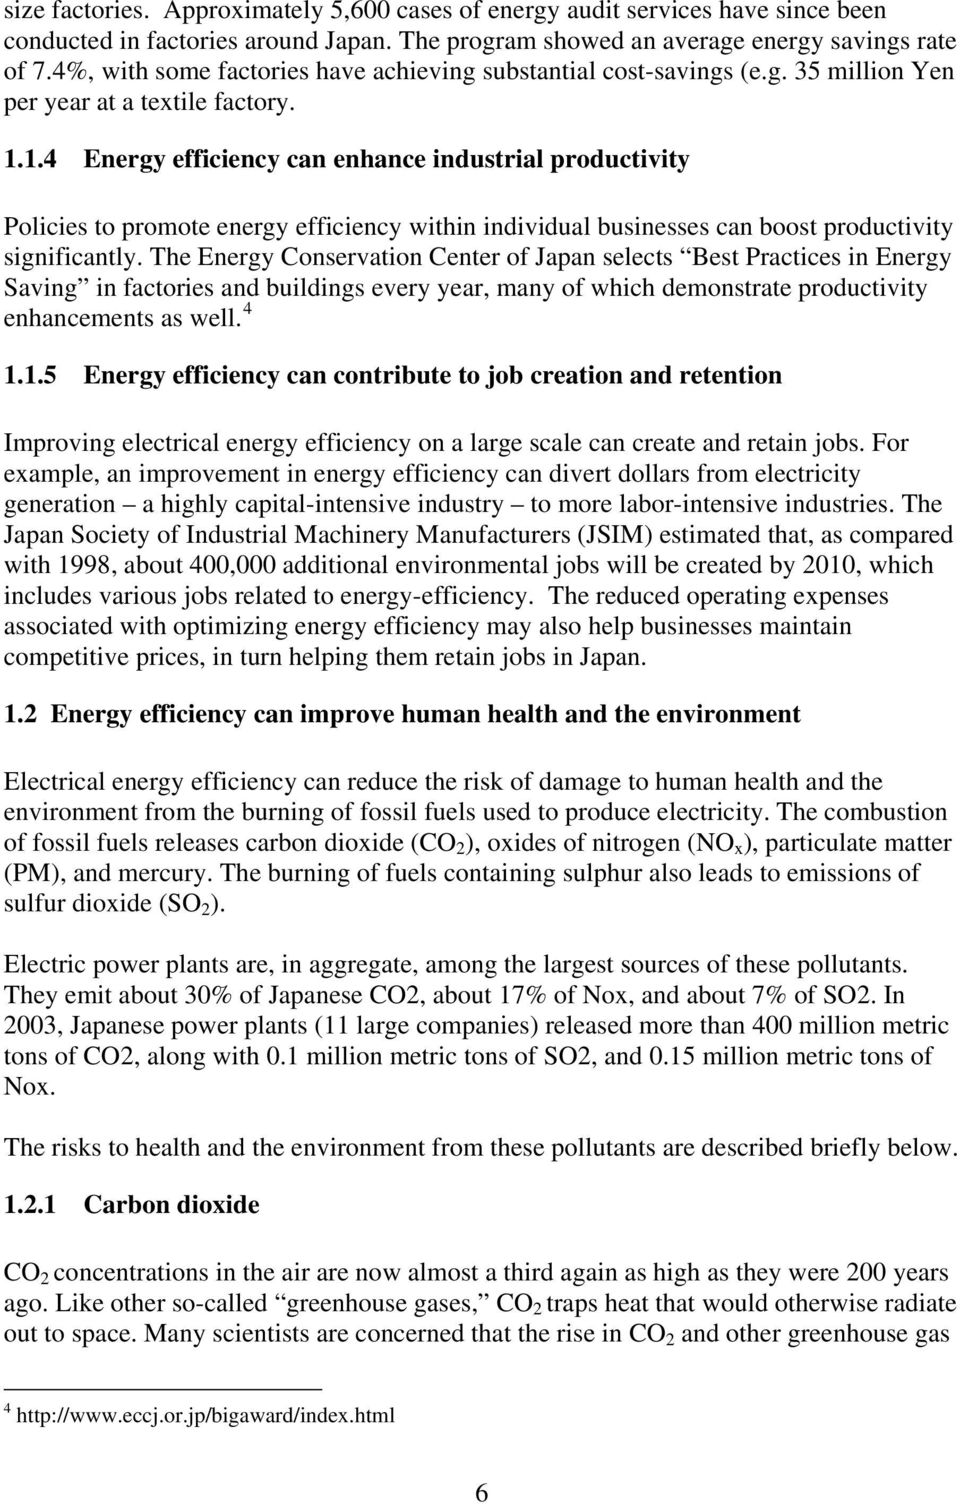 1.4 Energy efficiency can enhance industrial productivity Policies to promote energy efficiency within individual businesses can boost productivity significantly.